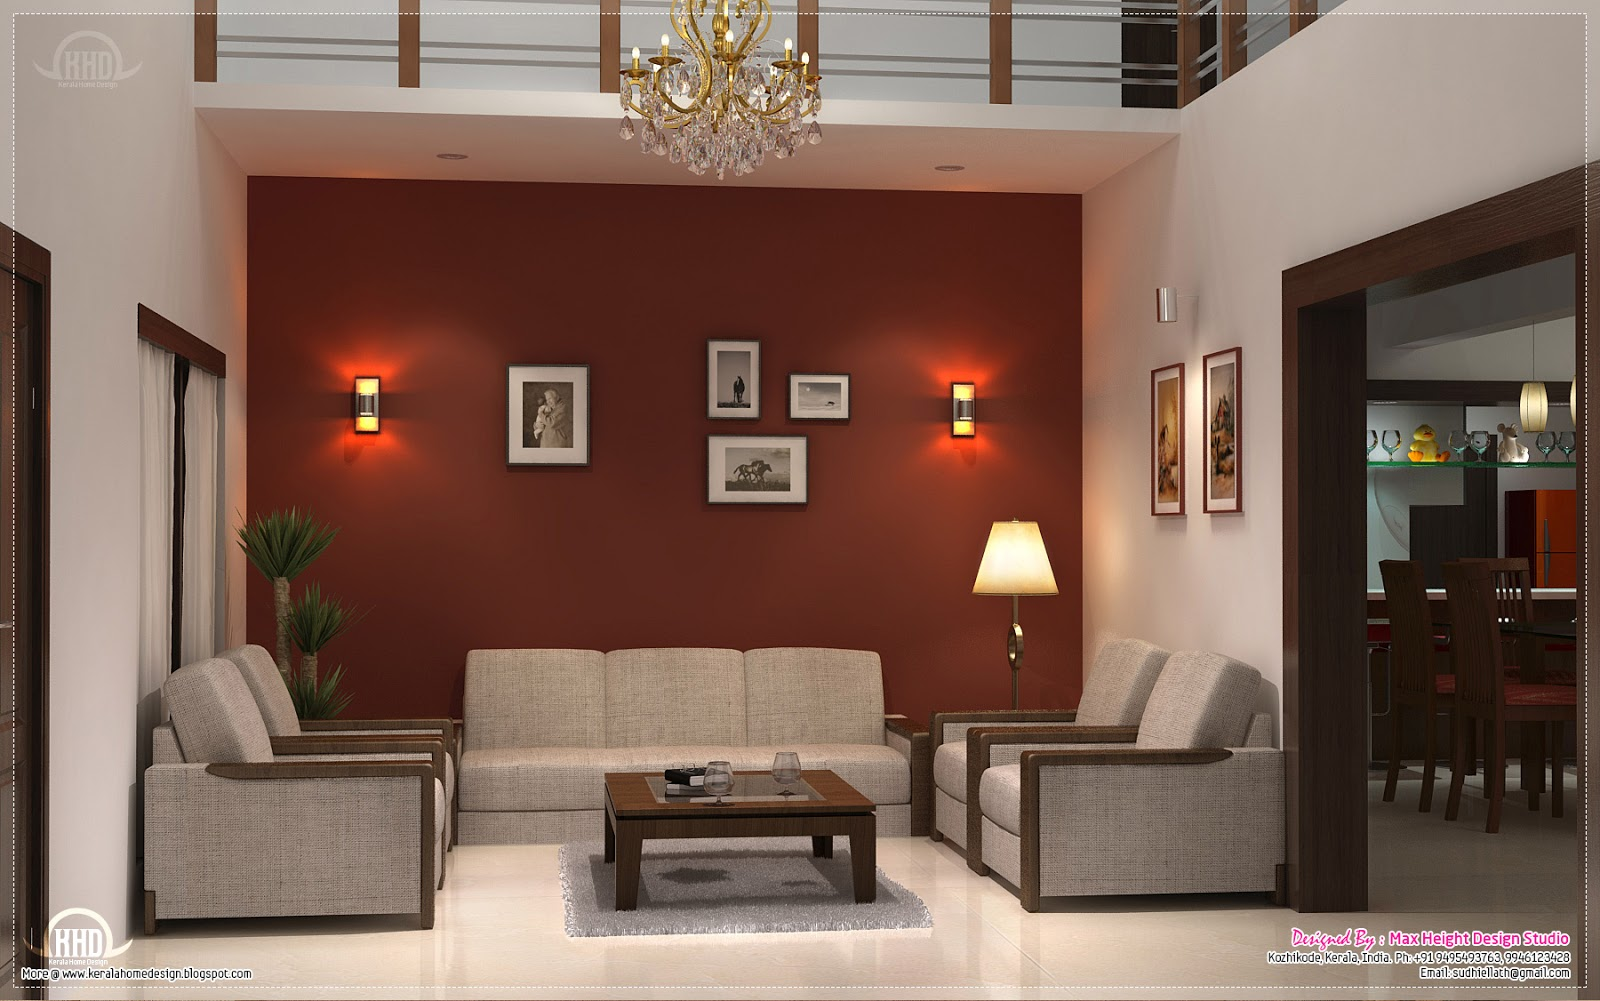 Home interior design ideas kerala home design and floor for Home drawing room design